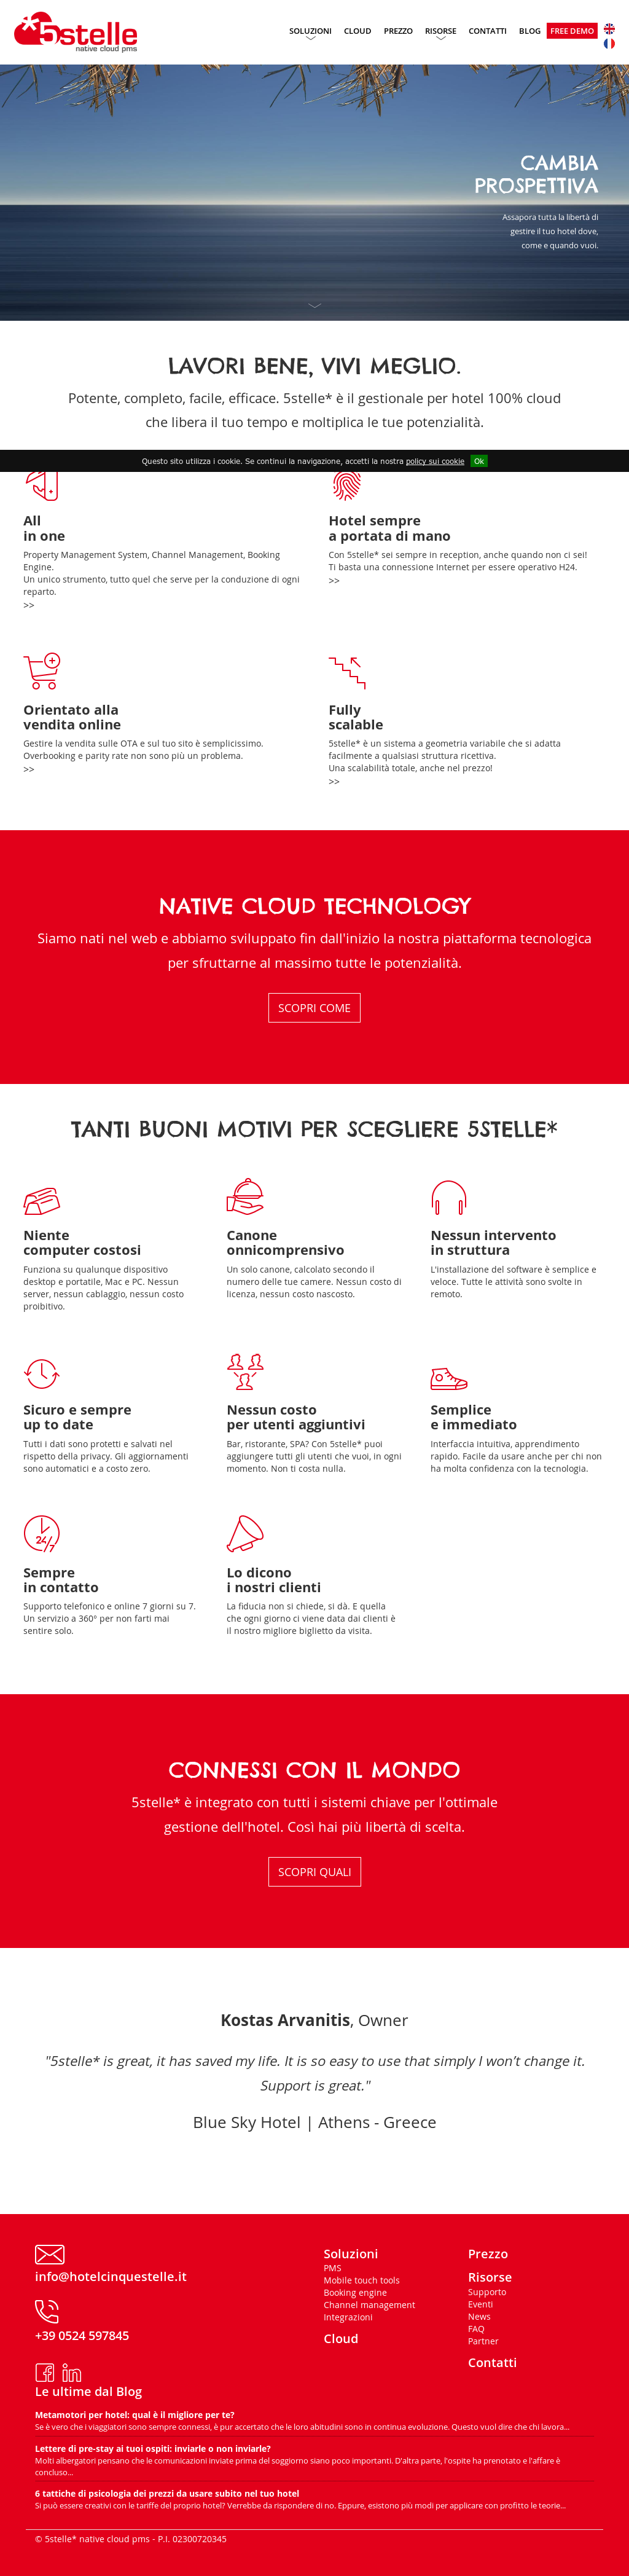 5stelle* Competitors, Revenue and Employees - Owler Company Profile